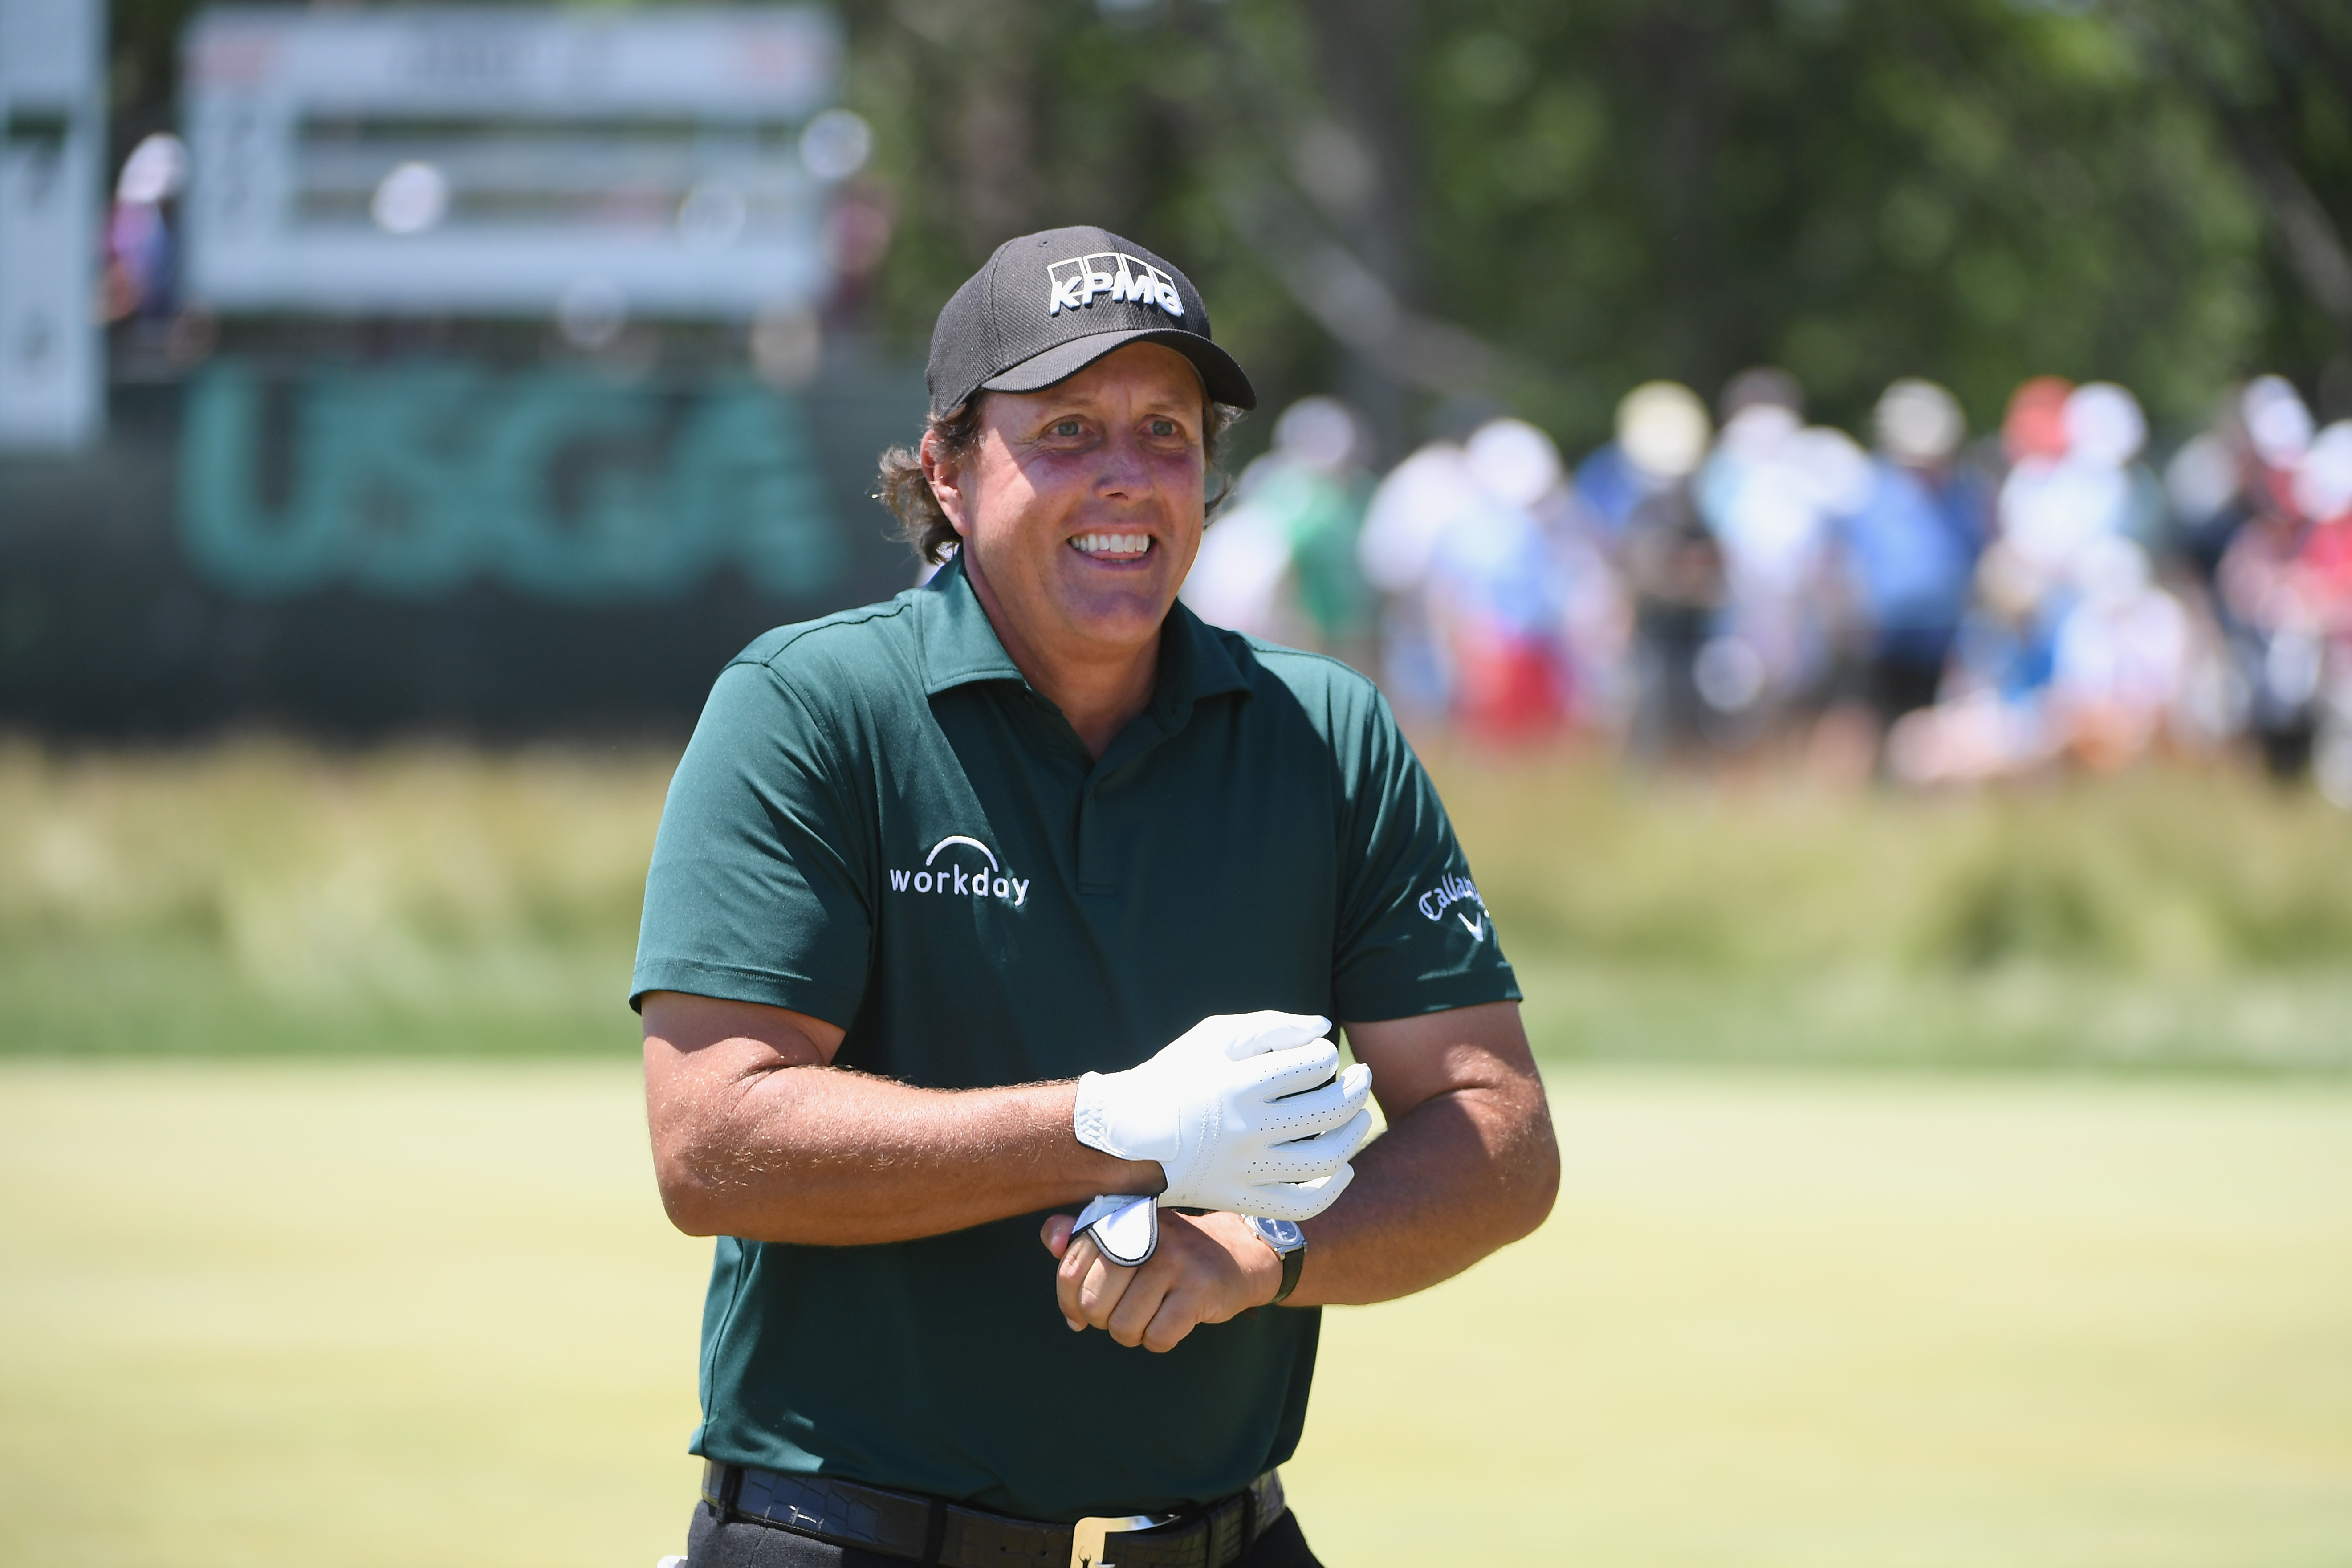 Mickelson apologizes 4 days after deliberately violating golf rules at US Open